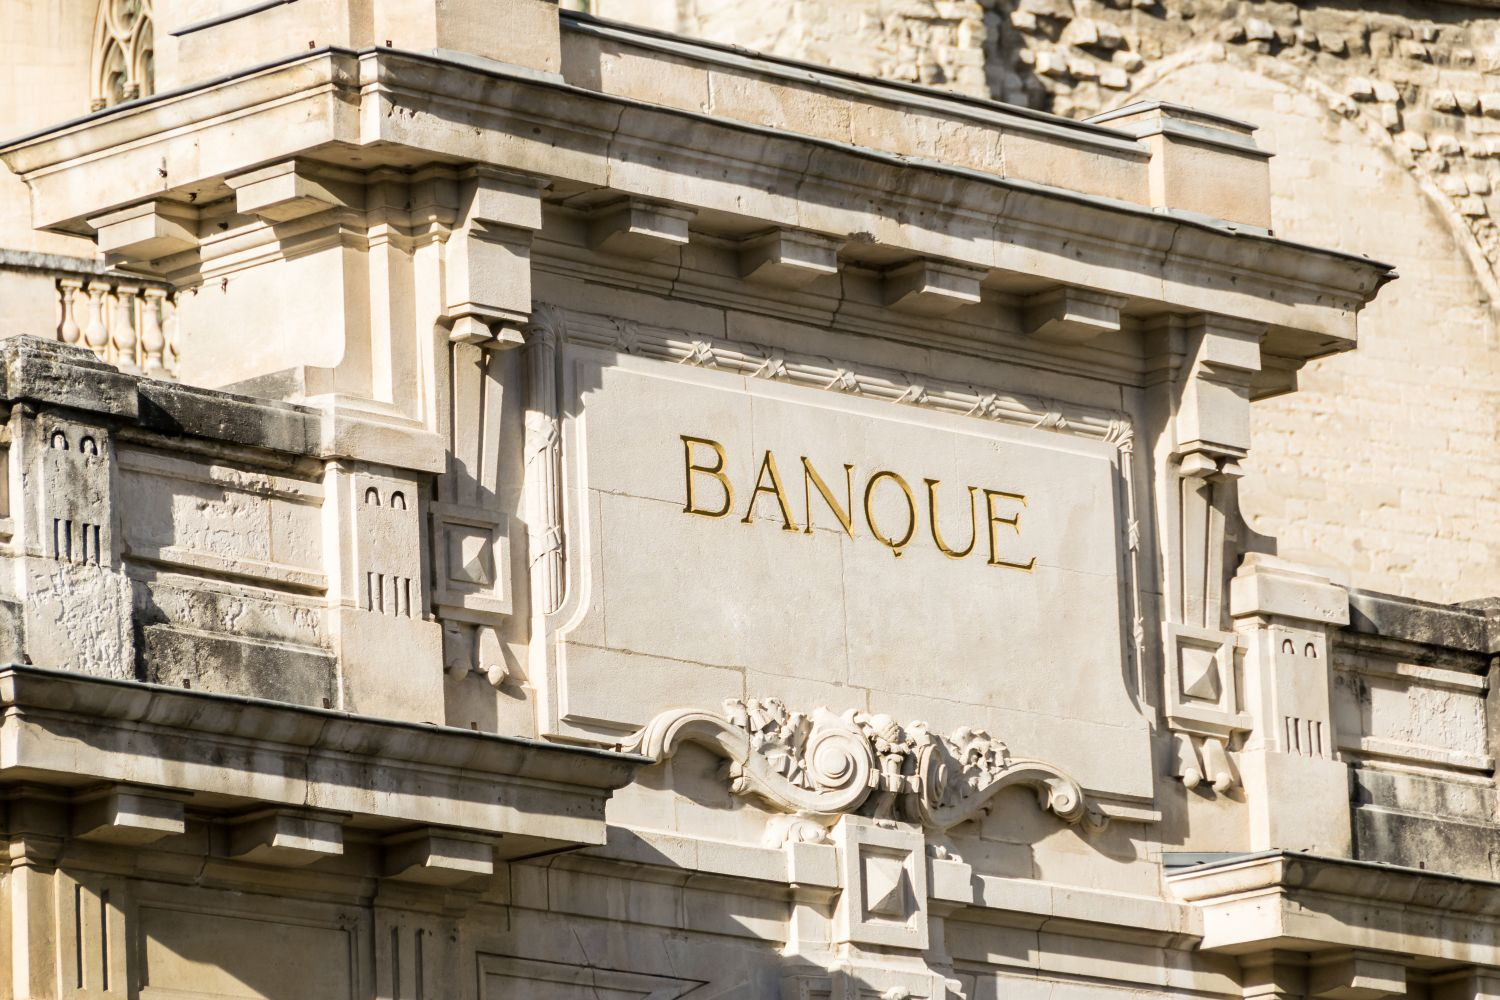 banque taux hypothecaires